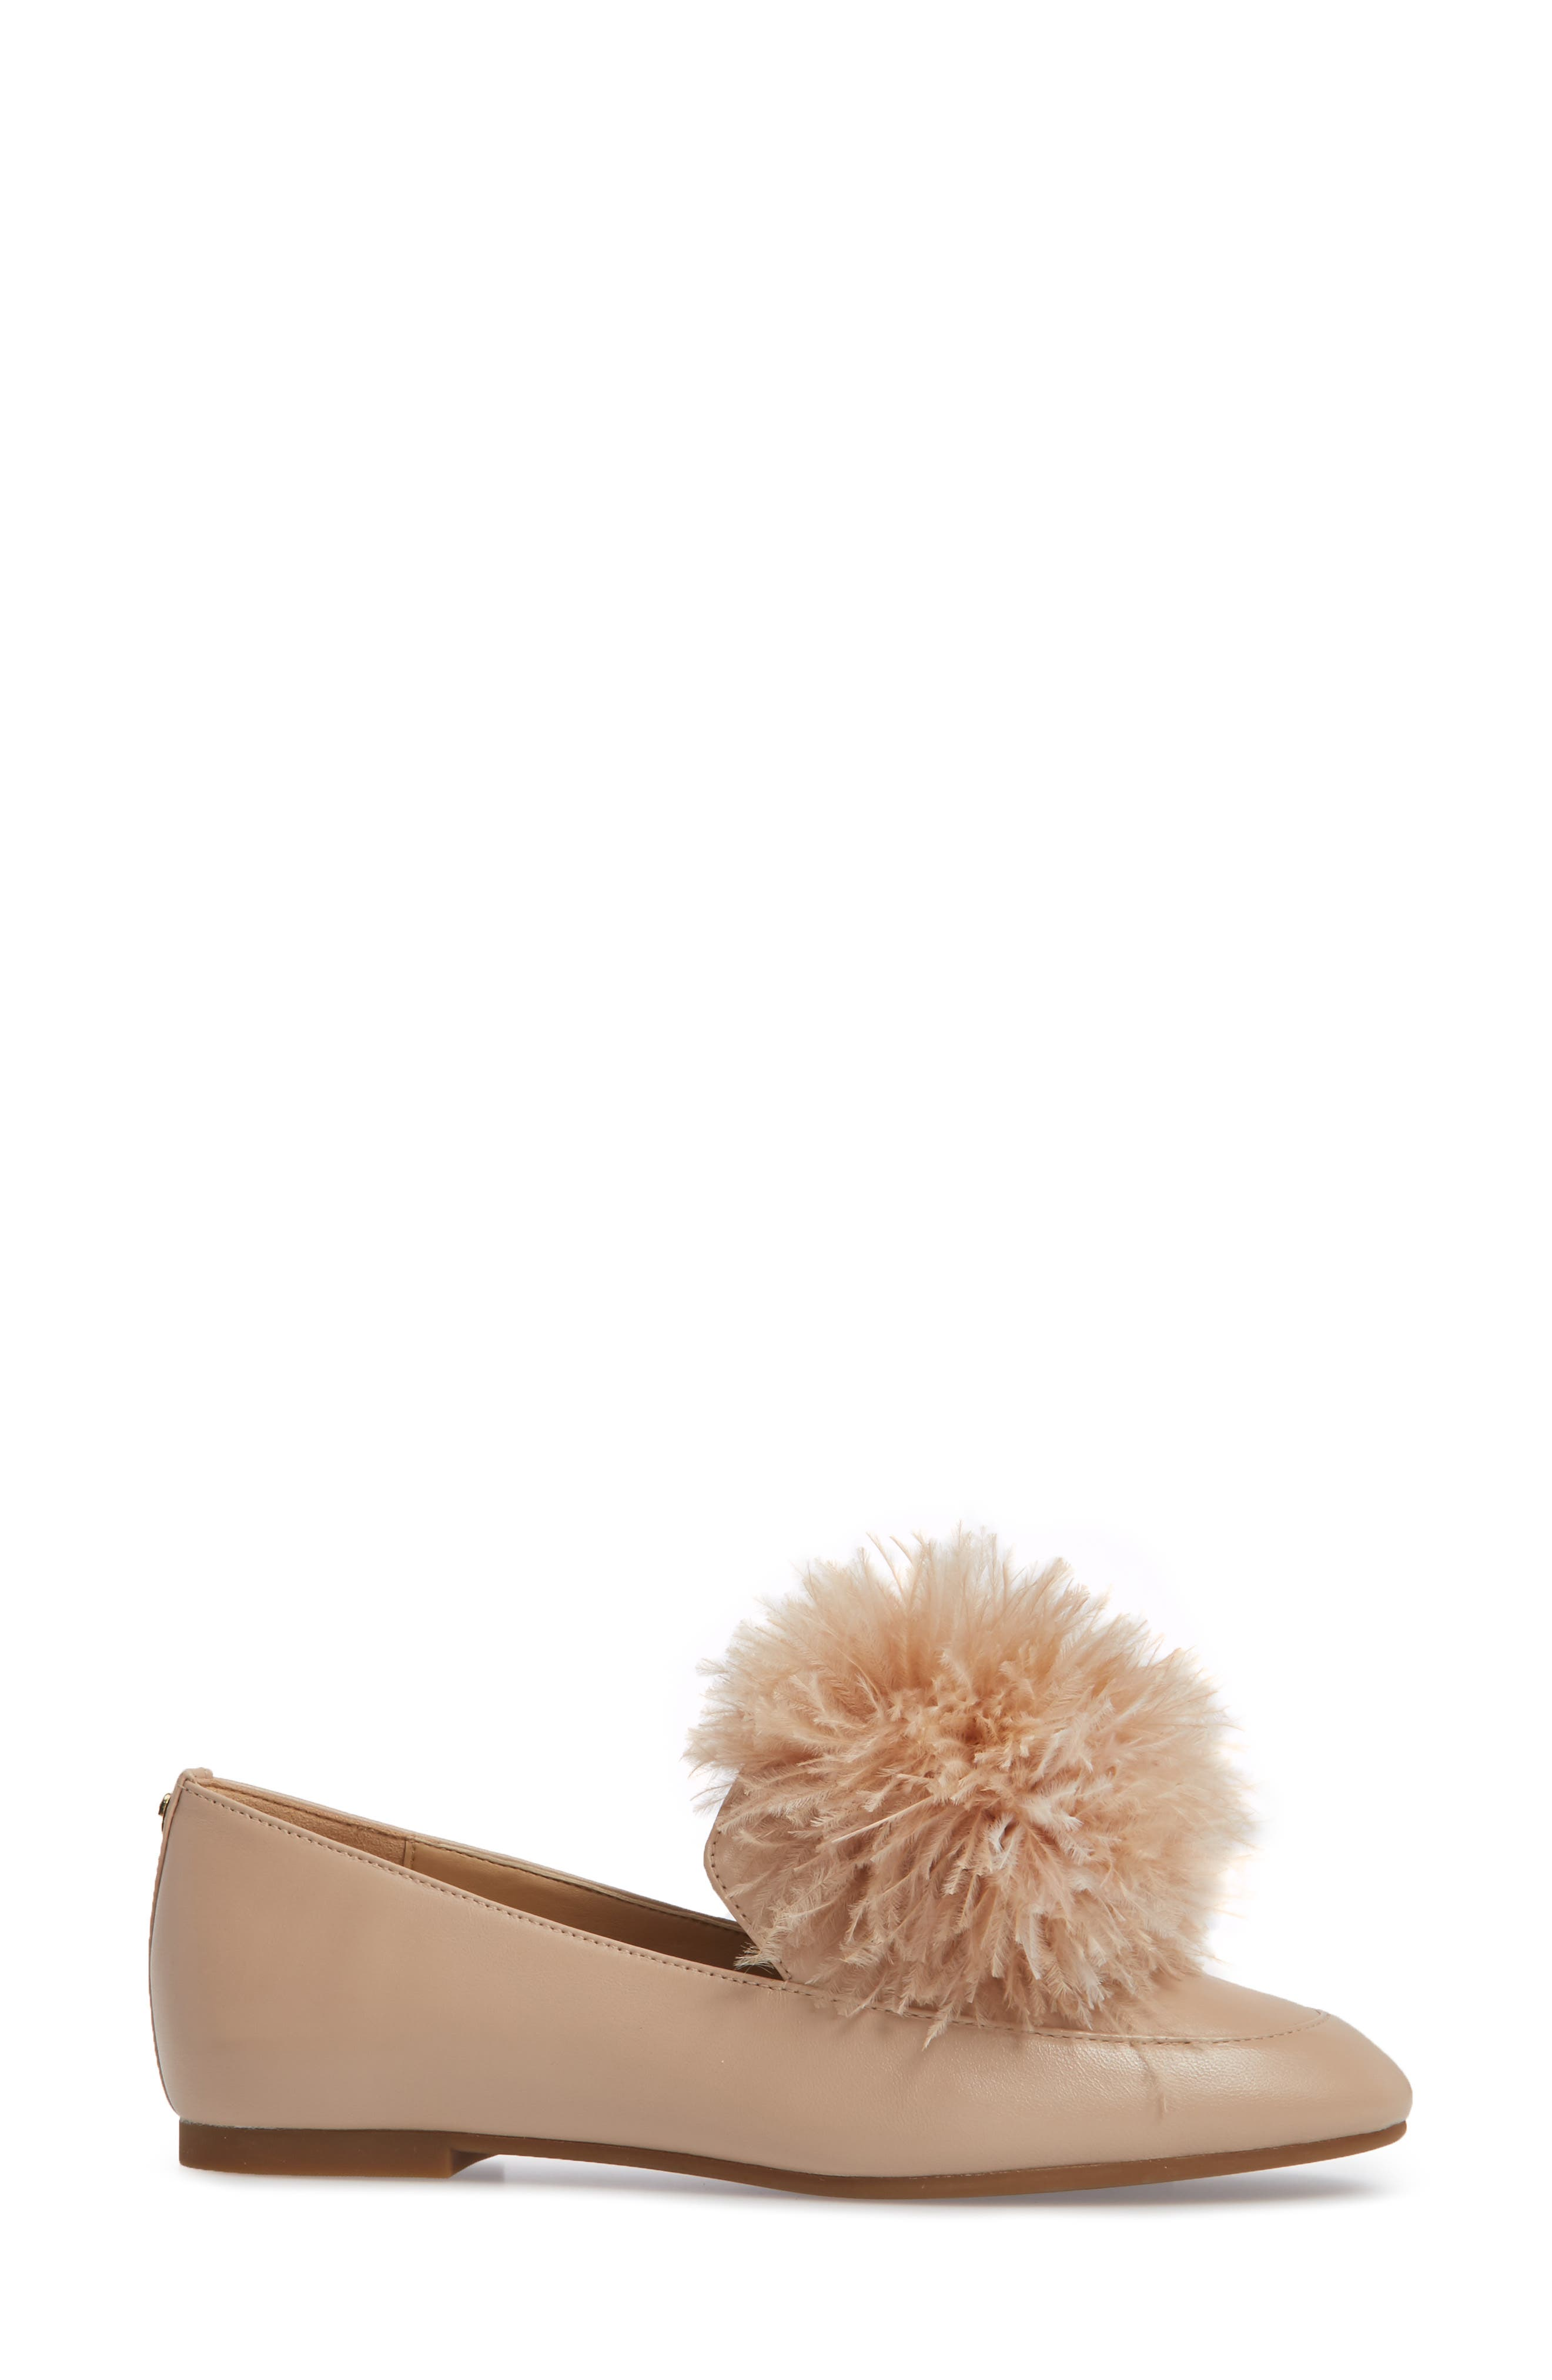 Fara Feather Pom Loafer,                             Alternate thumbnail 6, color,